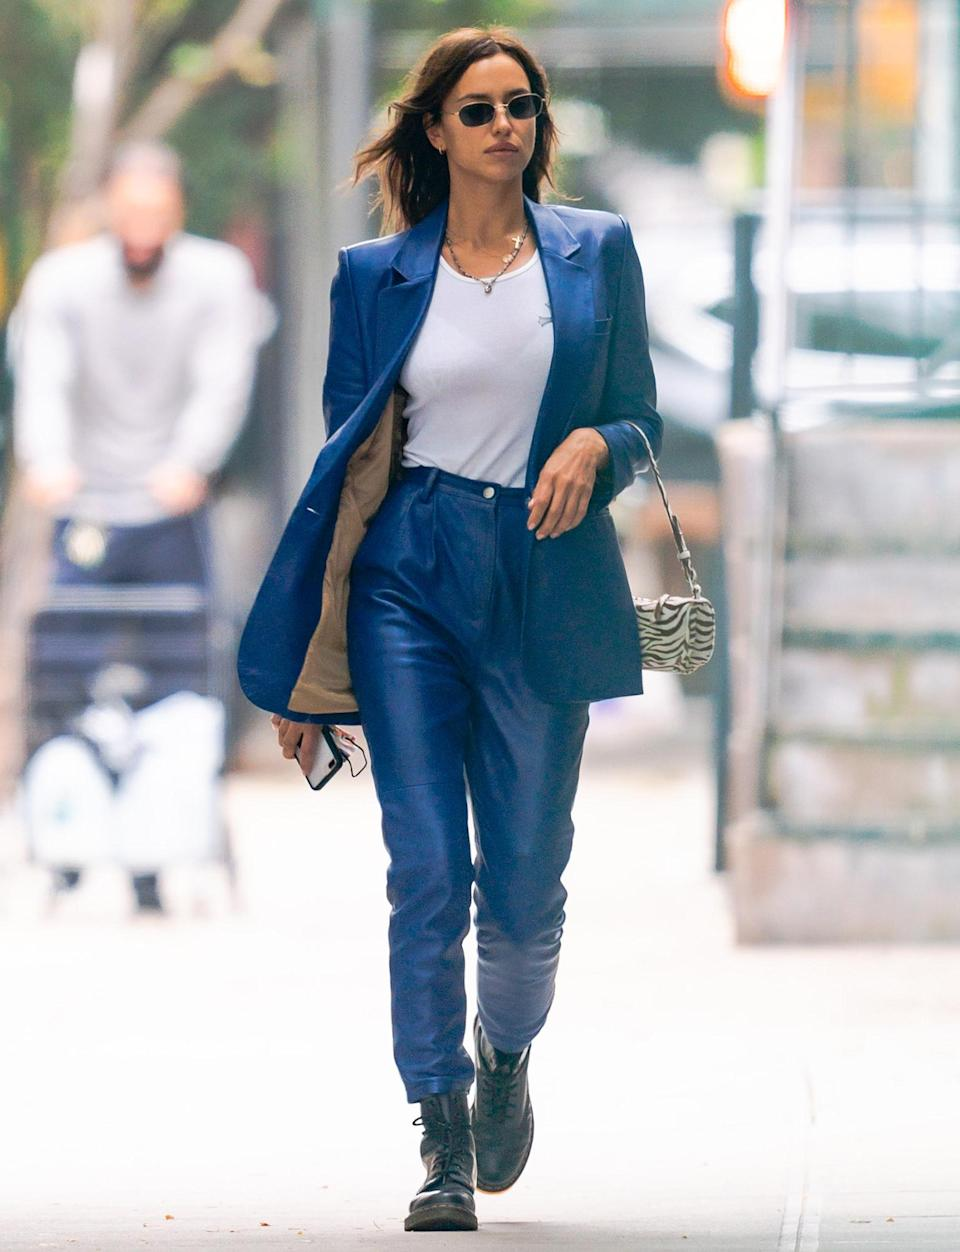 <p>Irina Shayk stuns in a bright blue suit on Friday in N.Y.C.</p>